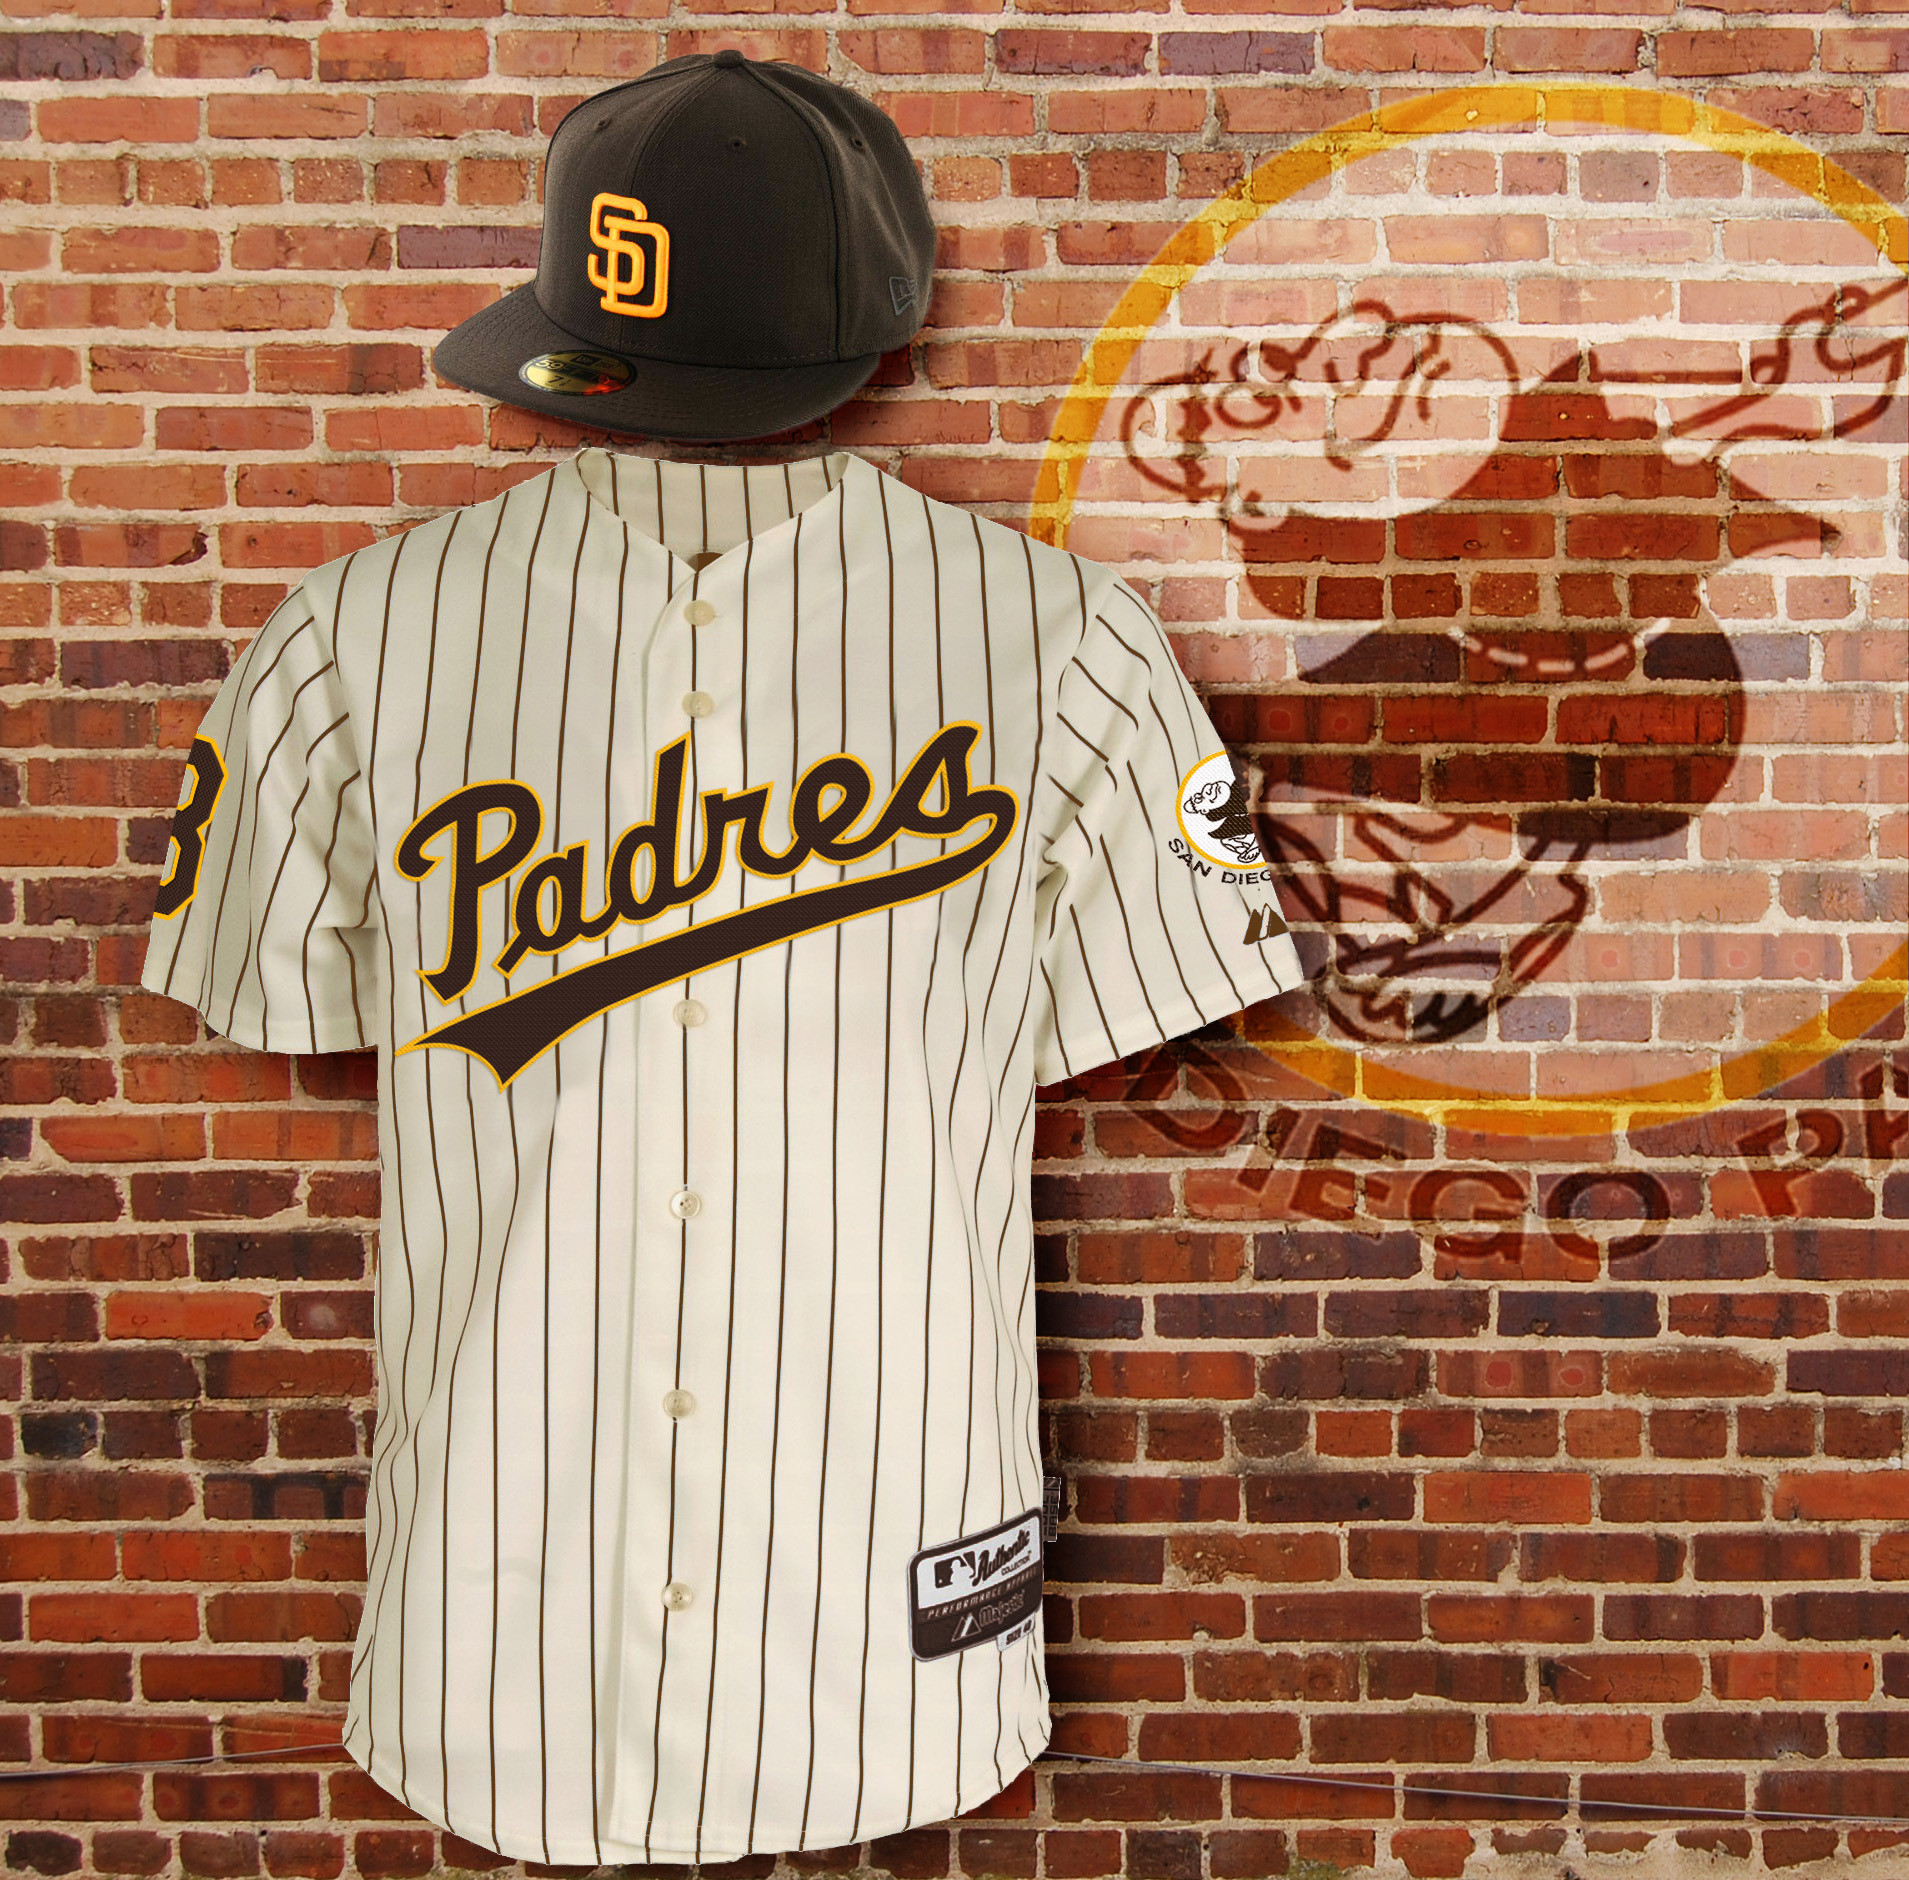 padres-brown-redesign